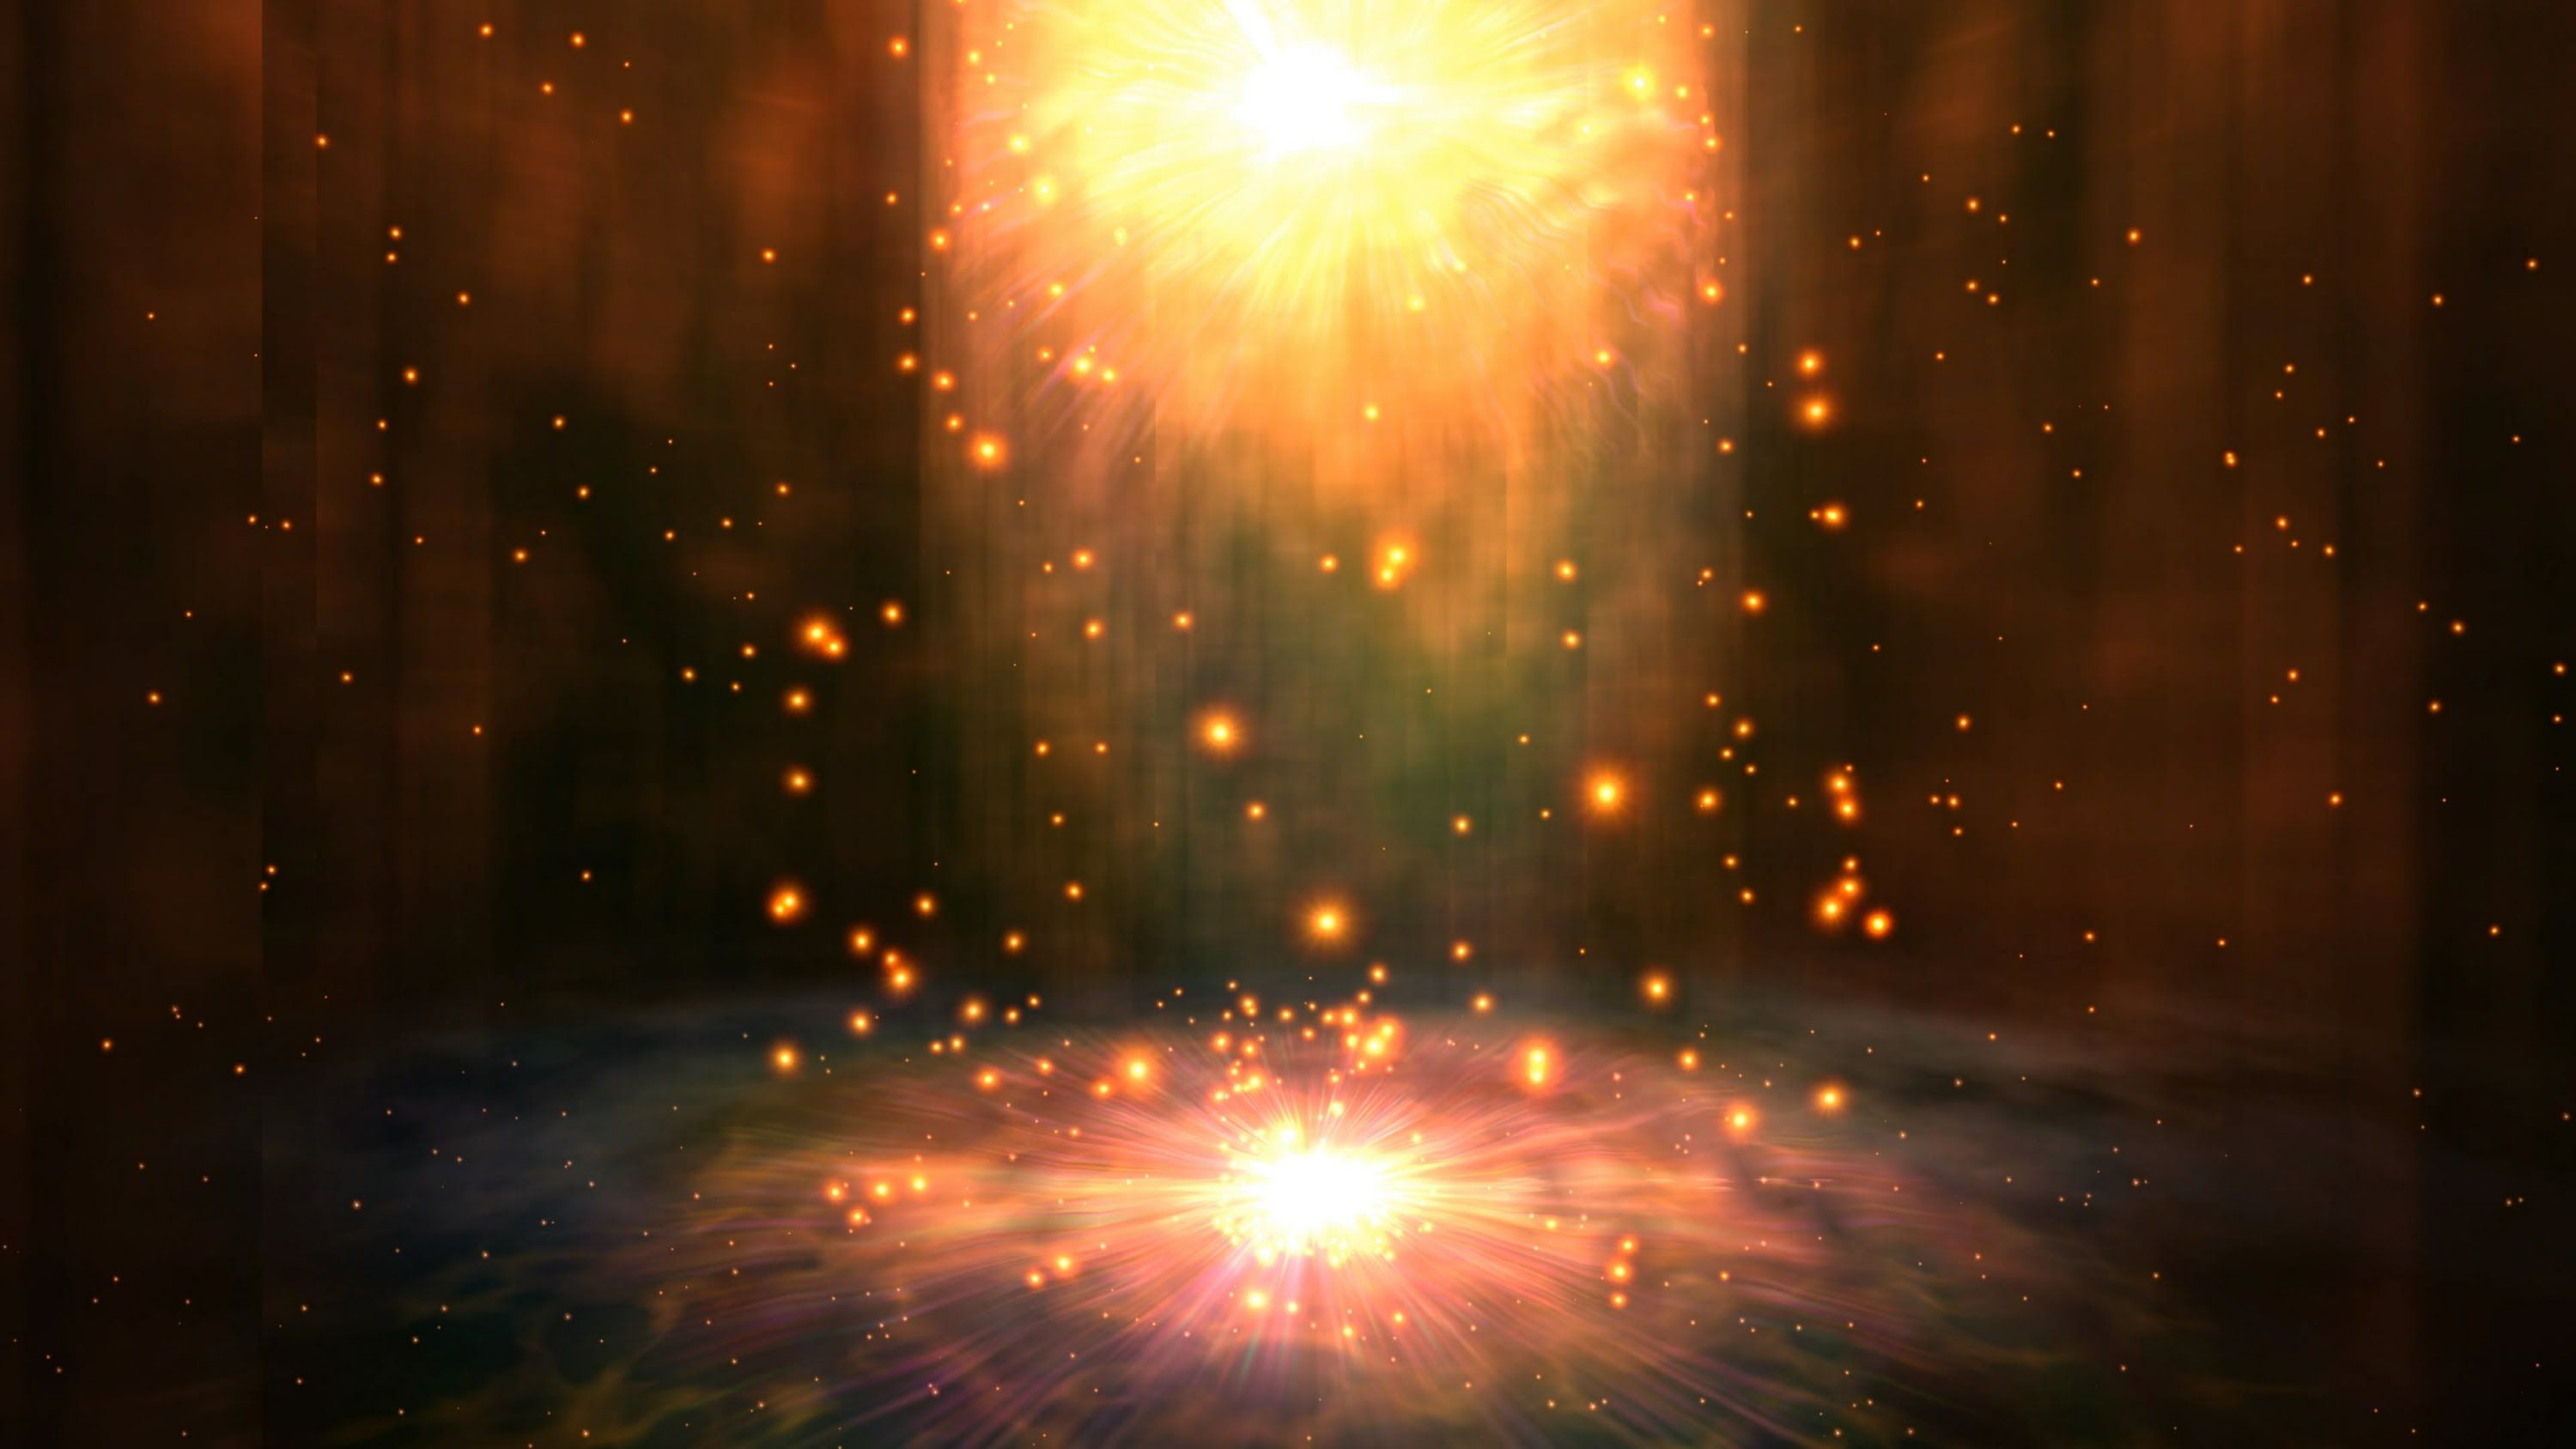 Magic Light Live Wallpaper Android Apps on Google Play